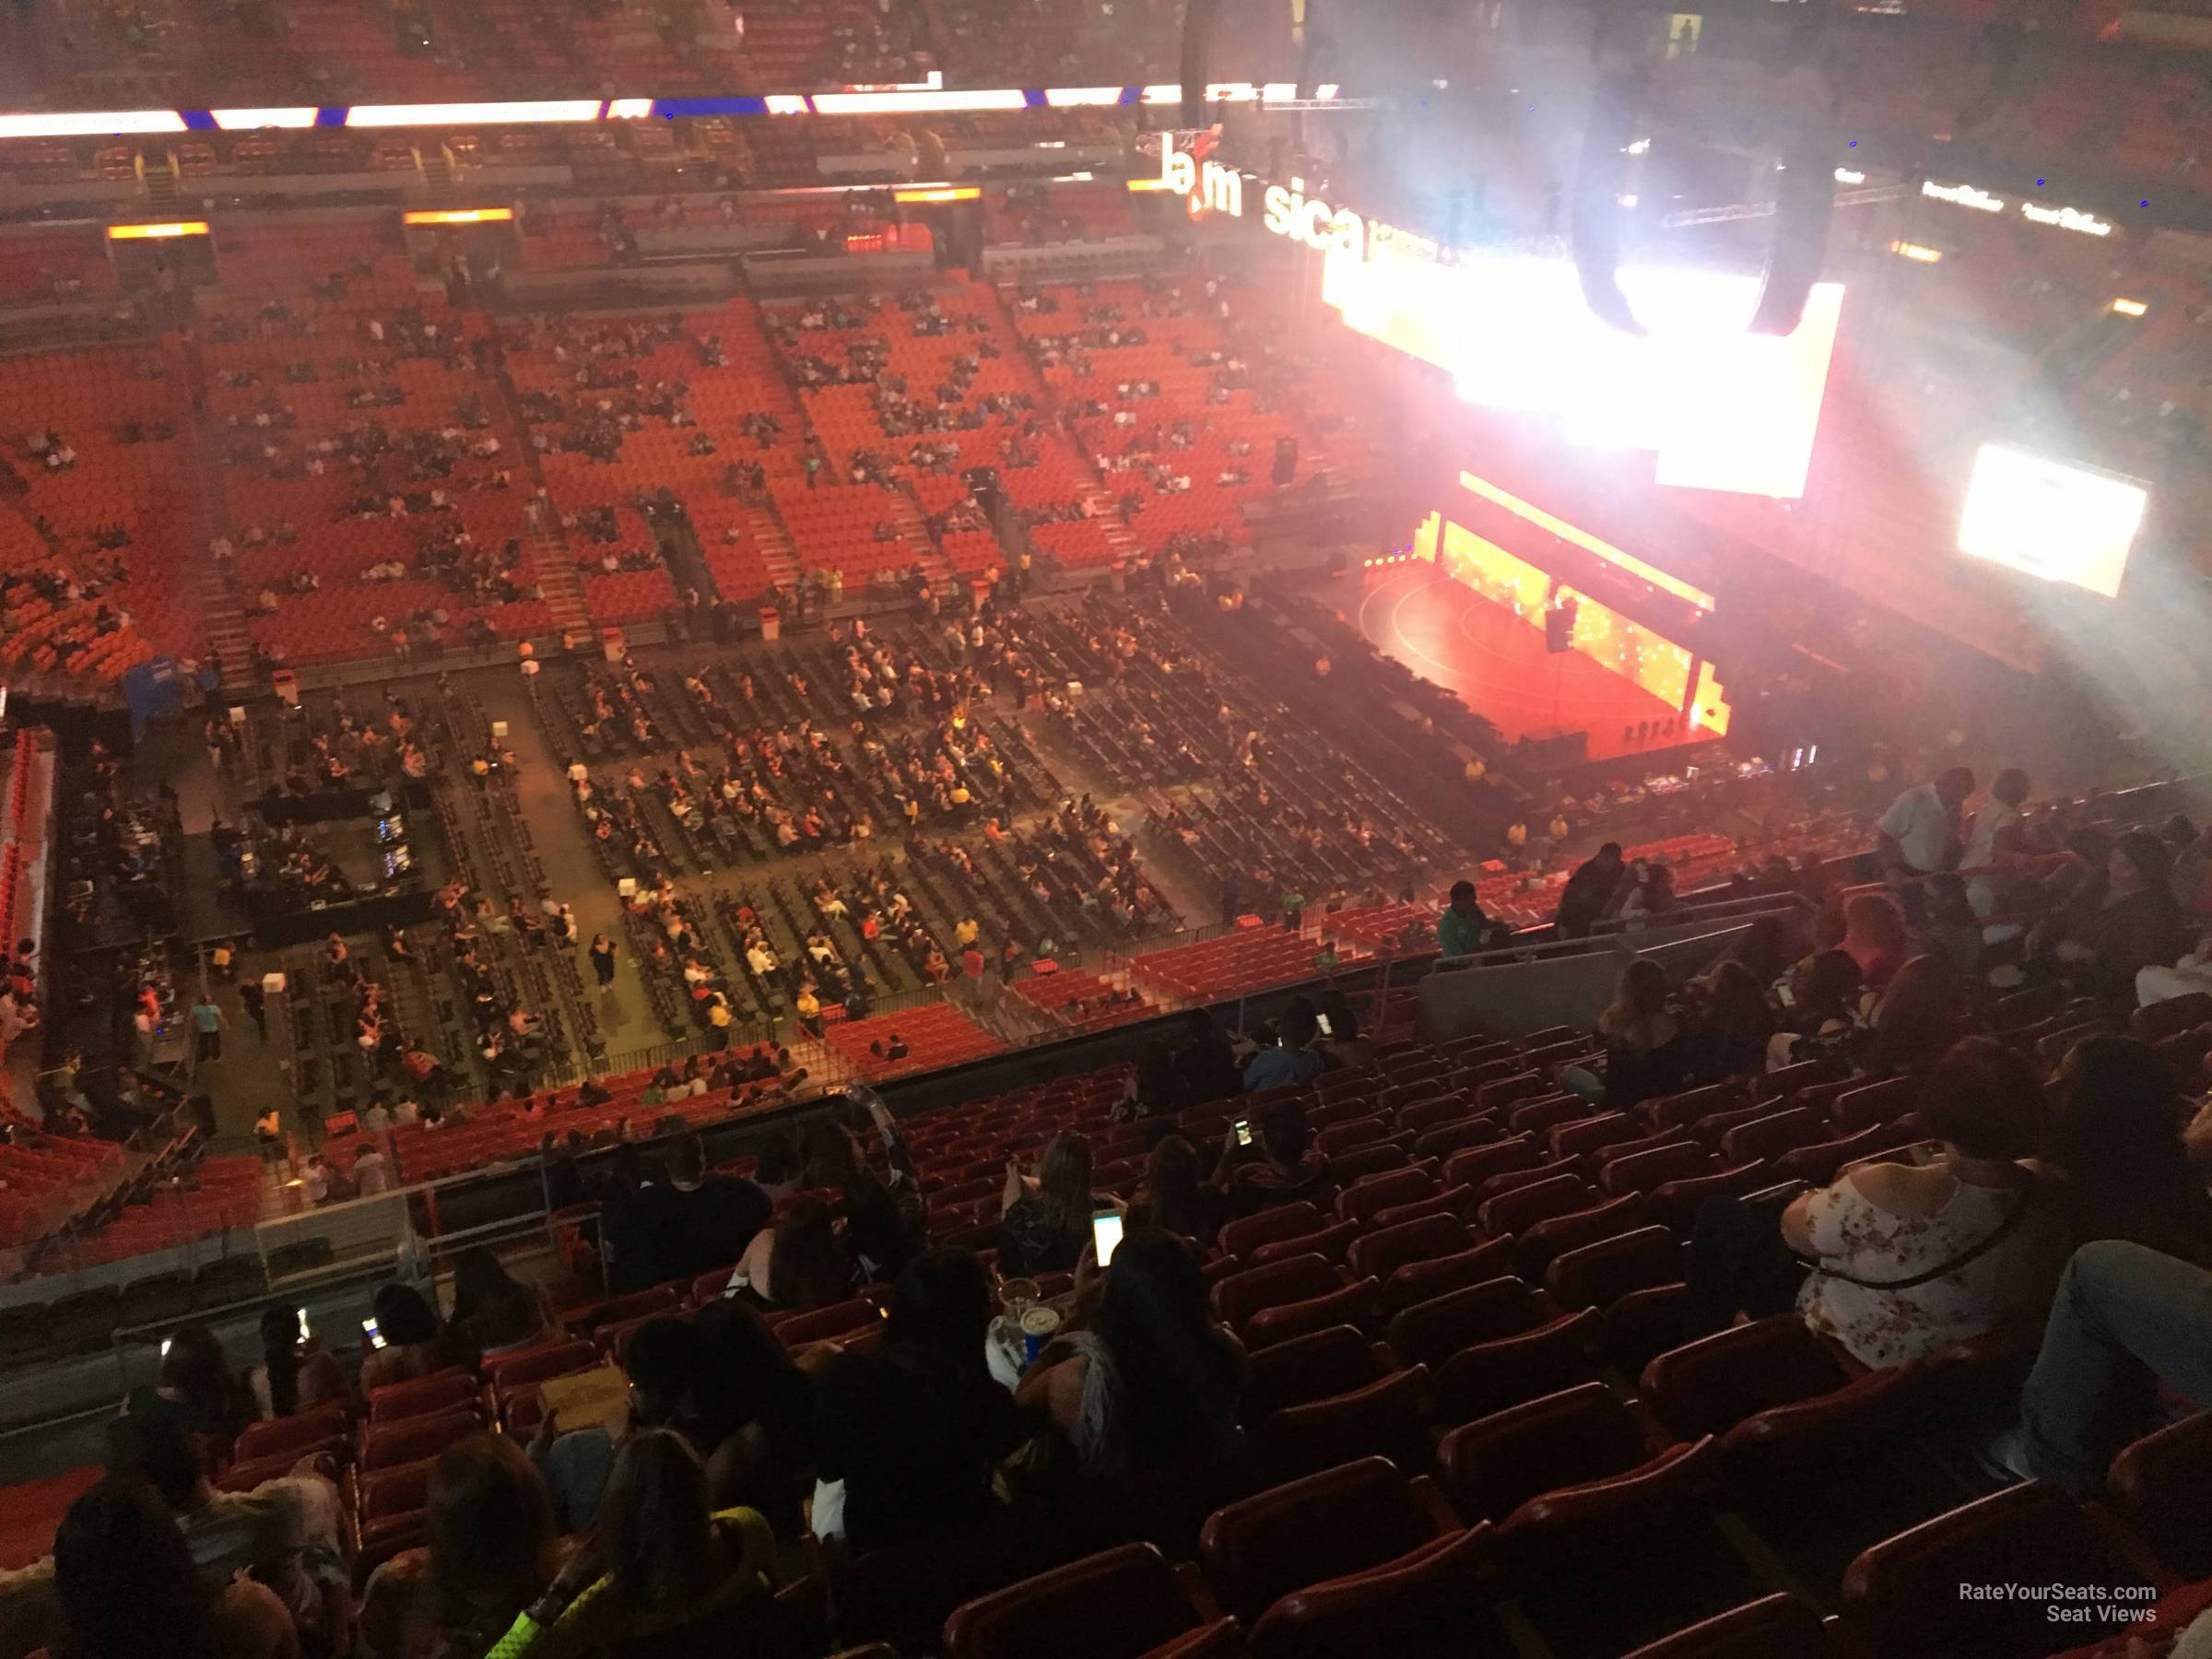 Concert Seat View for AmericanAirlines Arena Section 309, Row 18